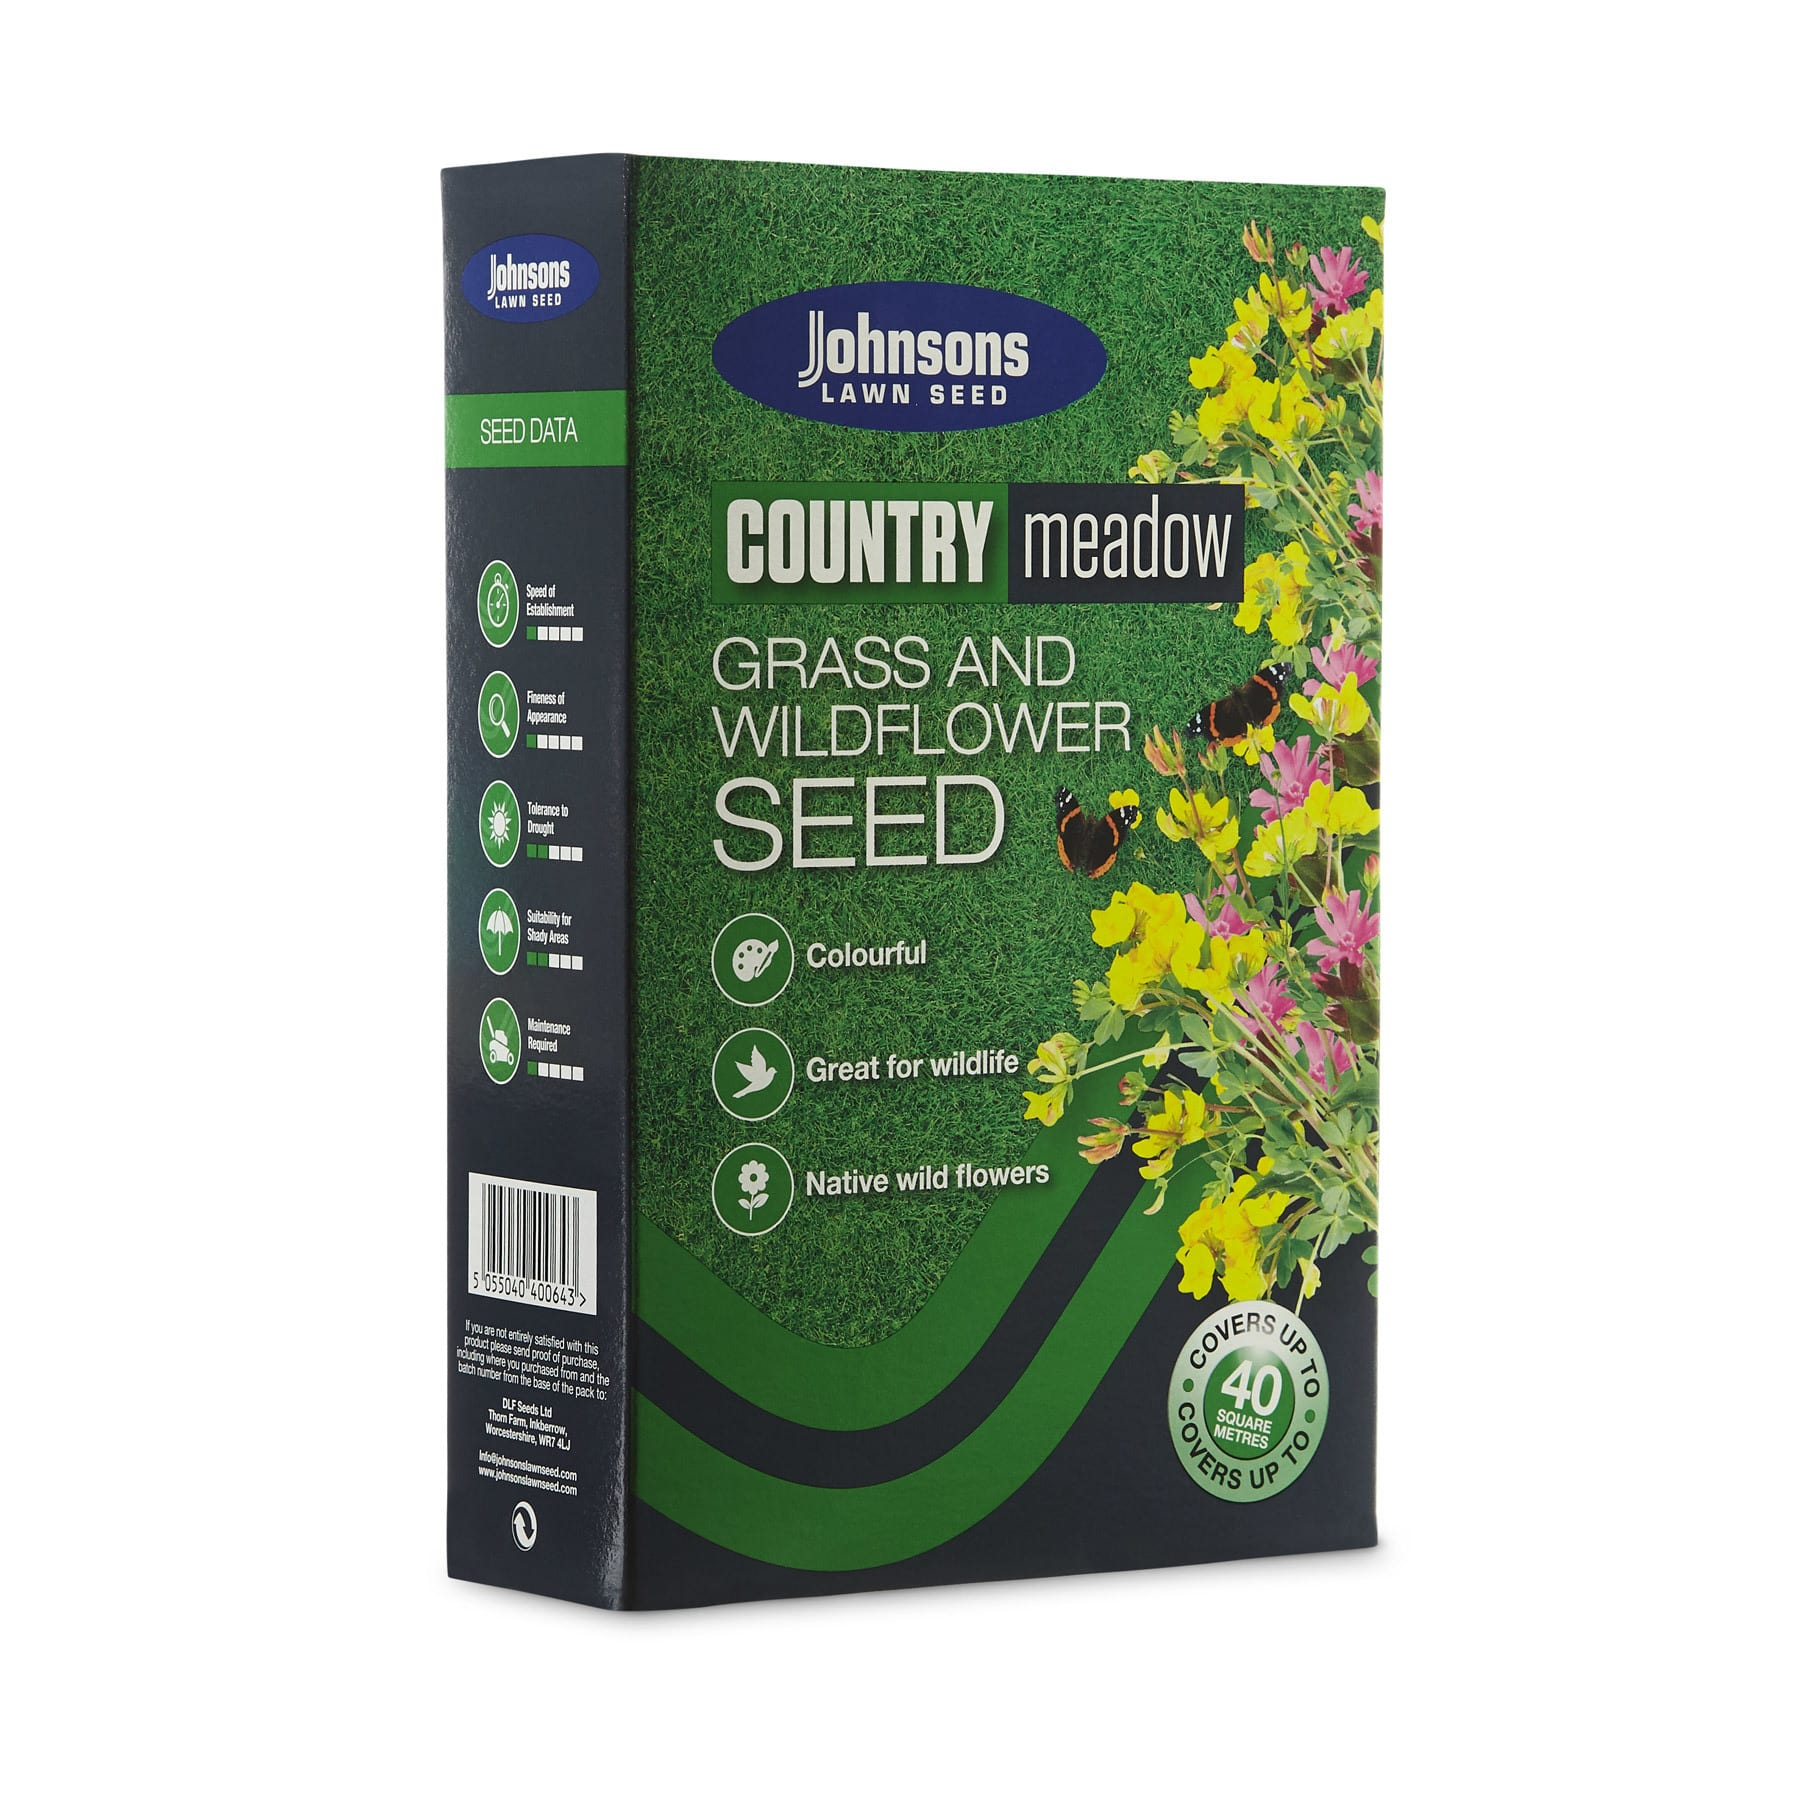 Johnsons Country Meadow Grass and Wildflower Seed